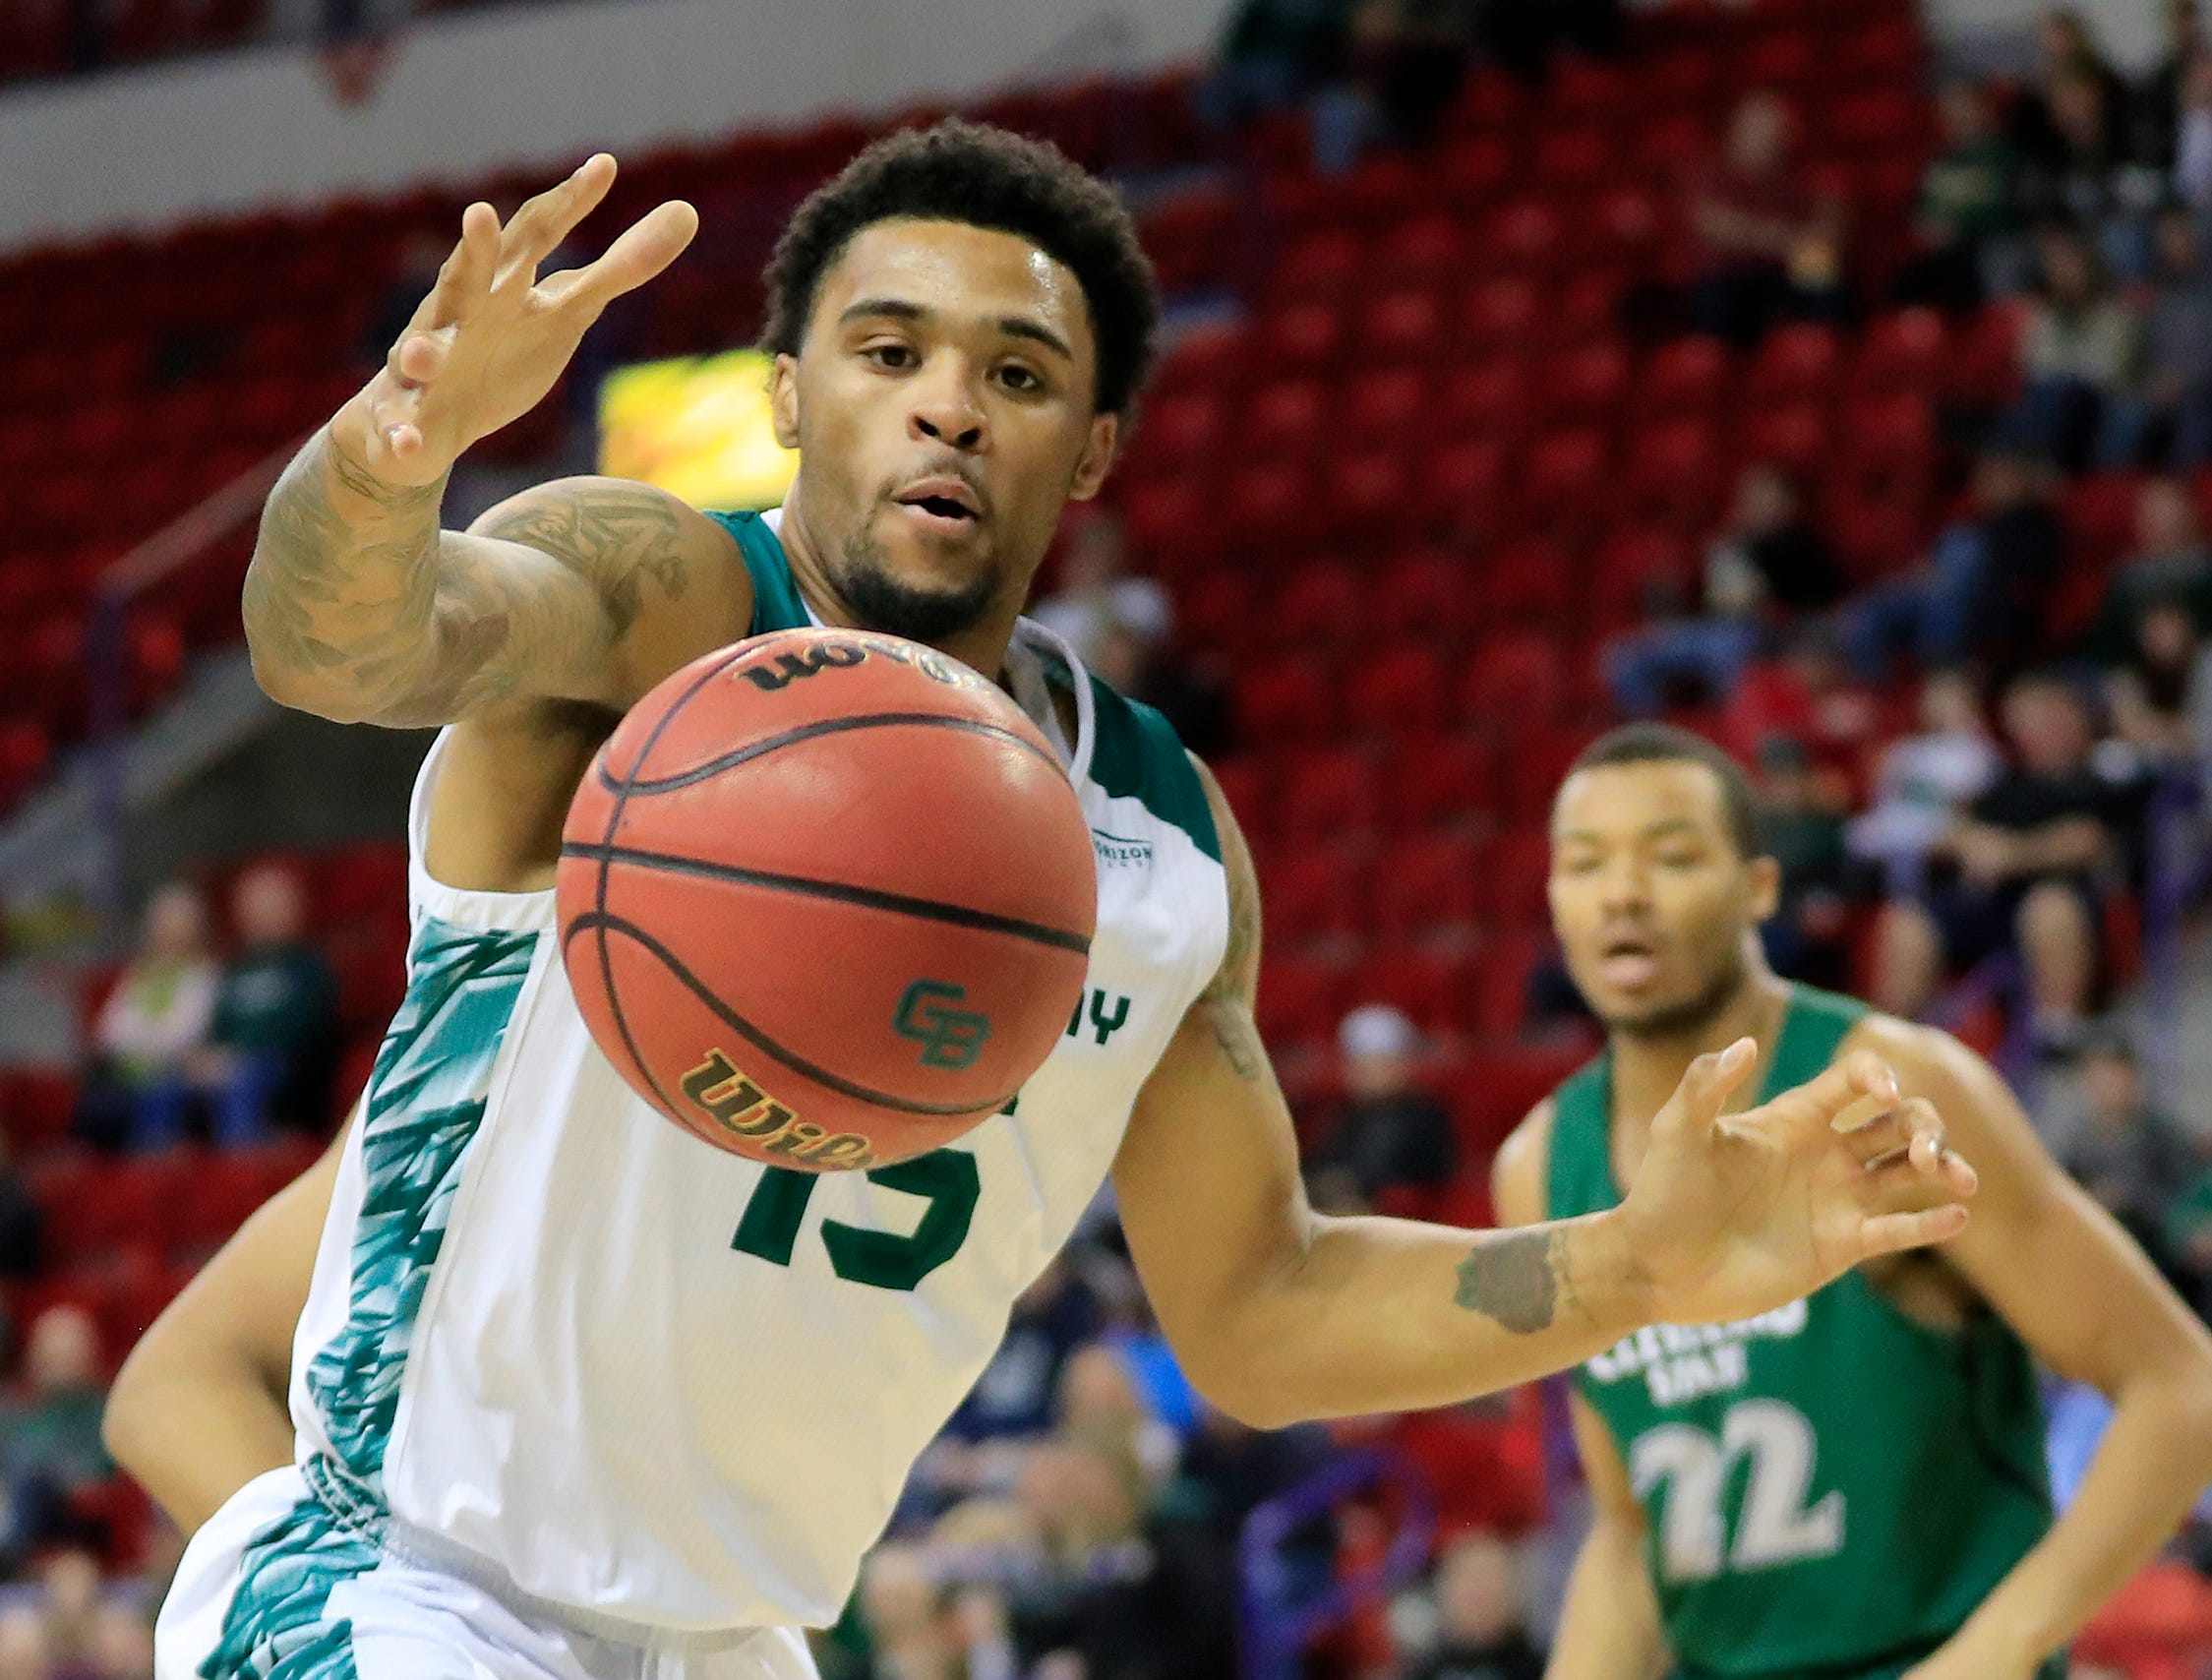 Green Bay Phoenix forward Manny Patterson (15) grabs a rebound against the Cleveland State Vikings in a Horizon League basketball game at the Resch Center on Saturday, January 5, 2019 in Green Bay, Wis.